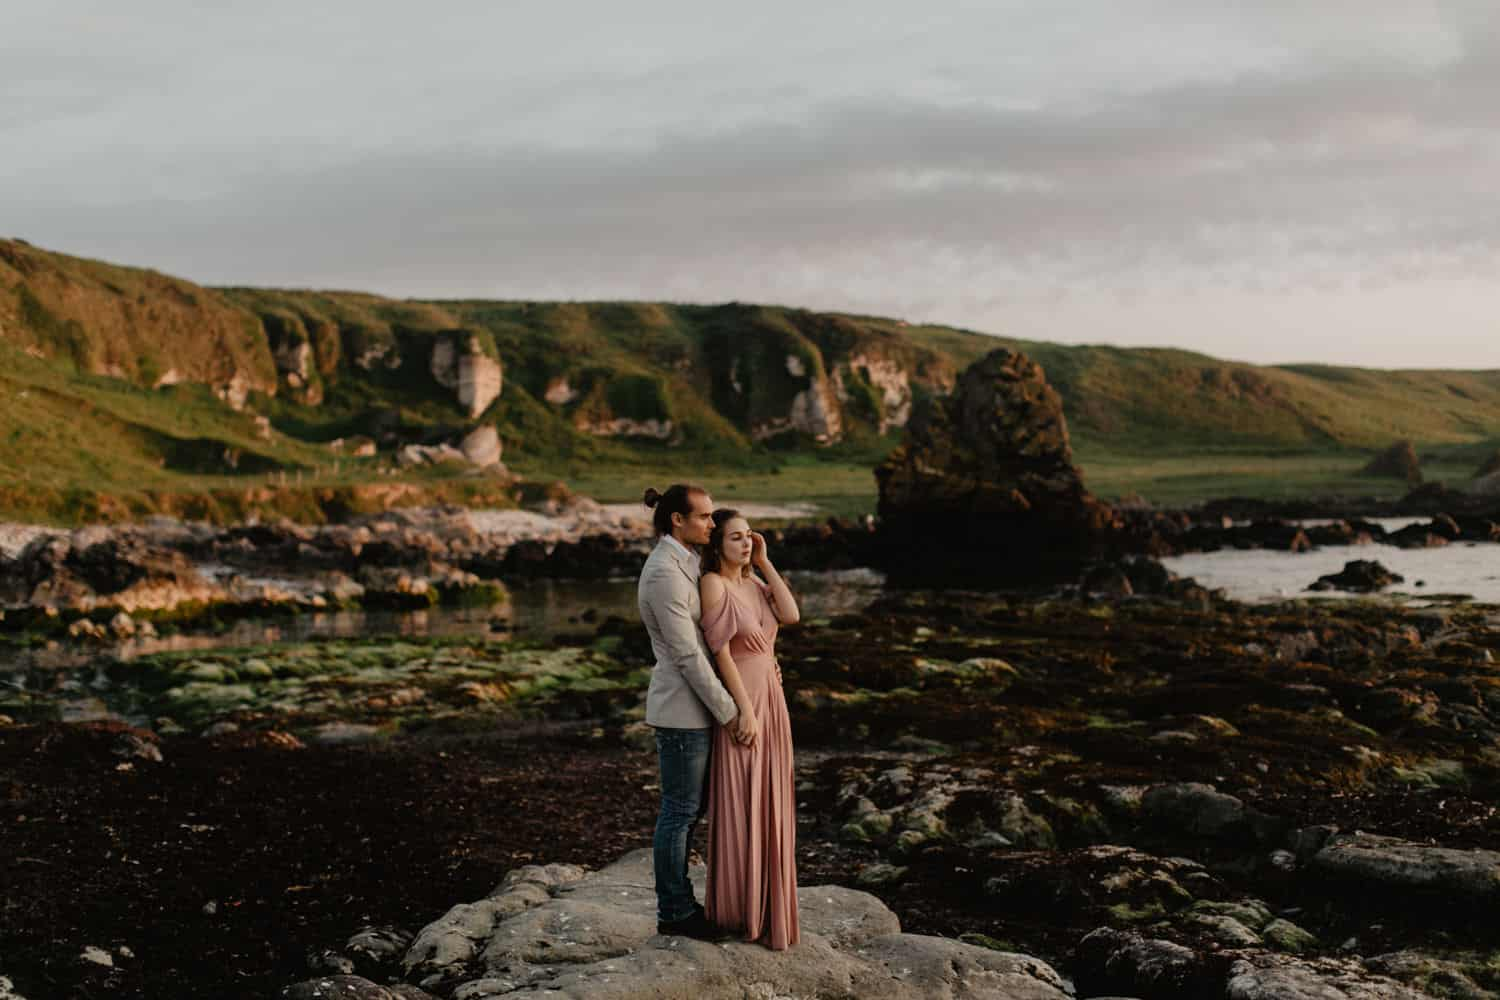 Ireland Elopement Planning Guide 2020